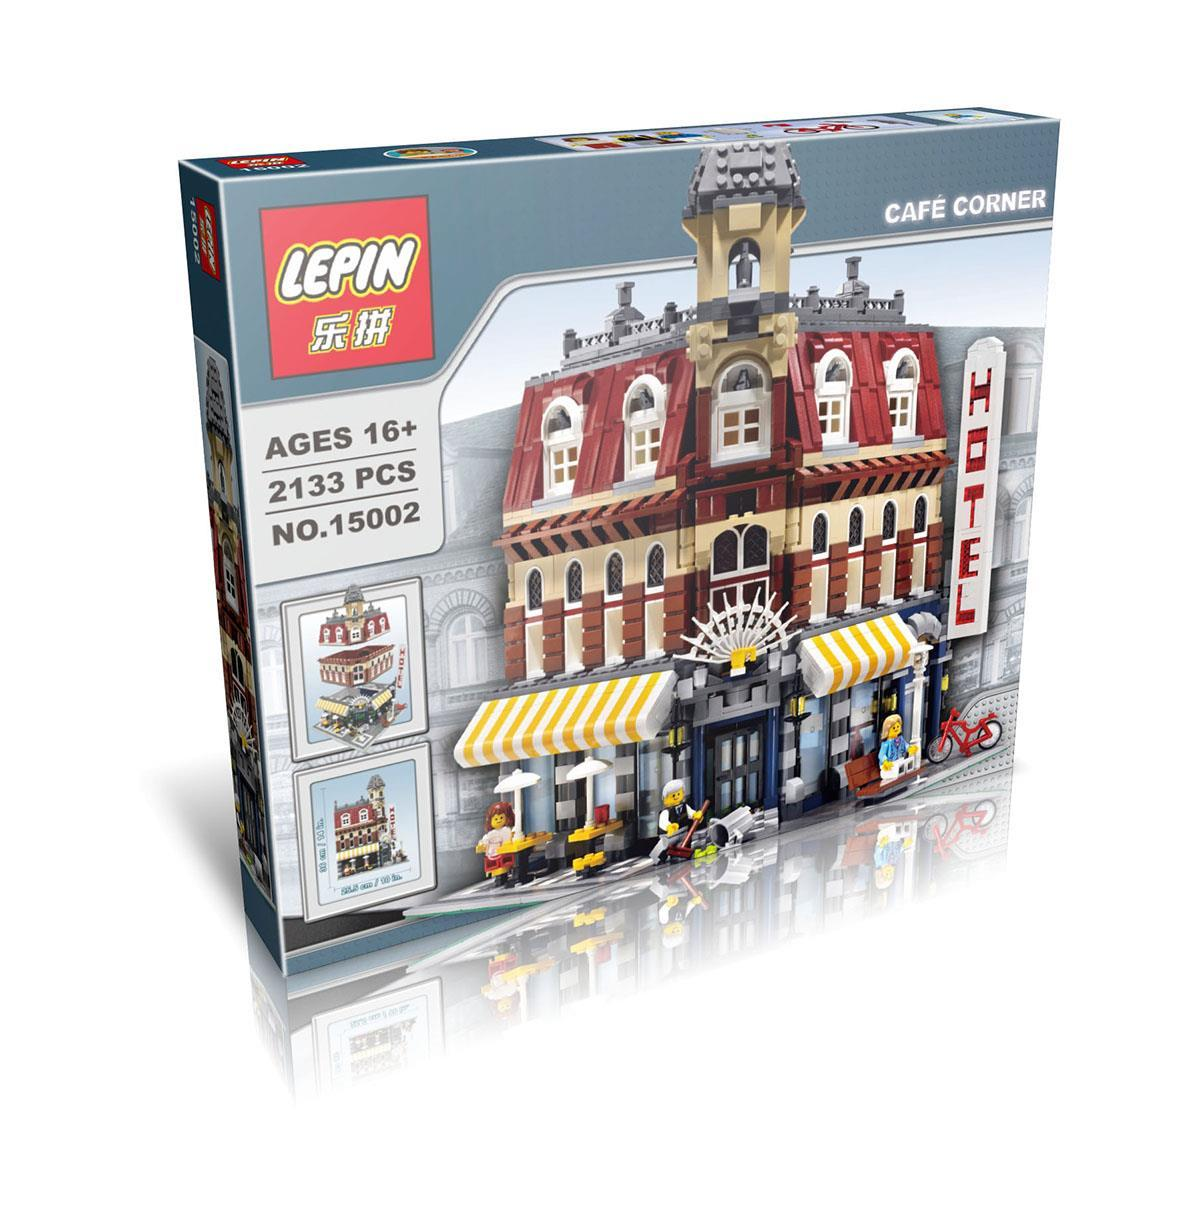 2133+ PCS Building Bricks, LP 15002 Building Blocks Creator 10182 Cafe Corner.